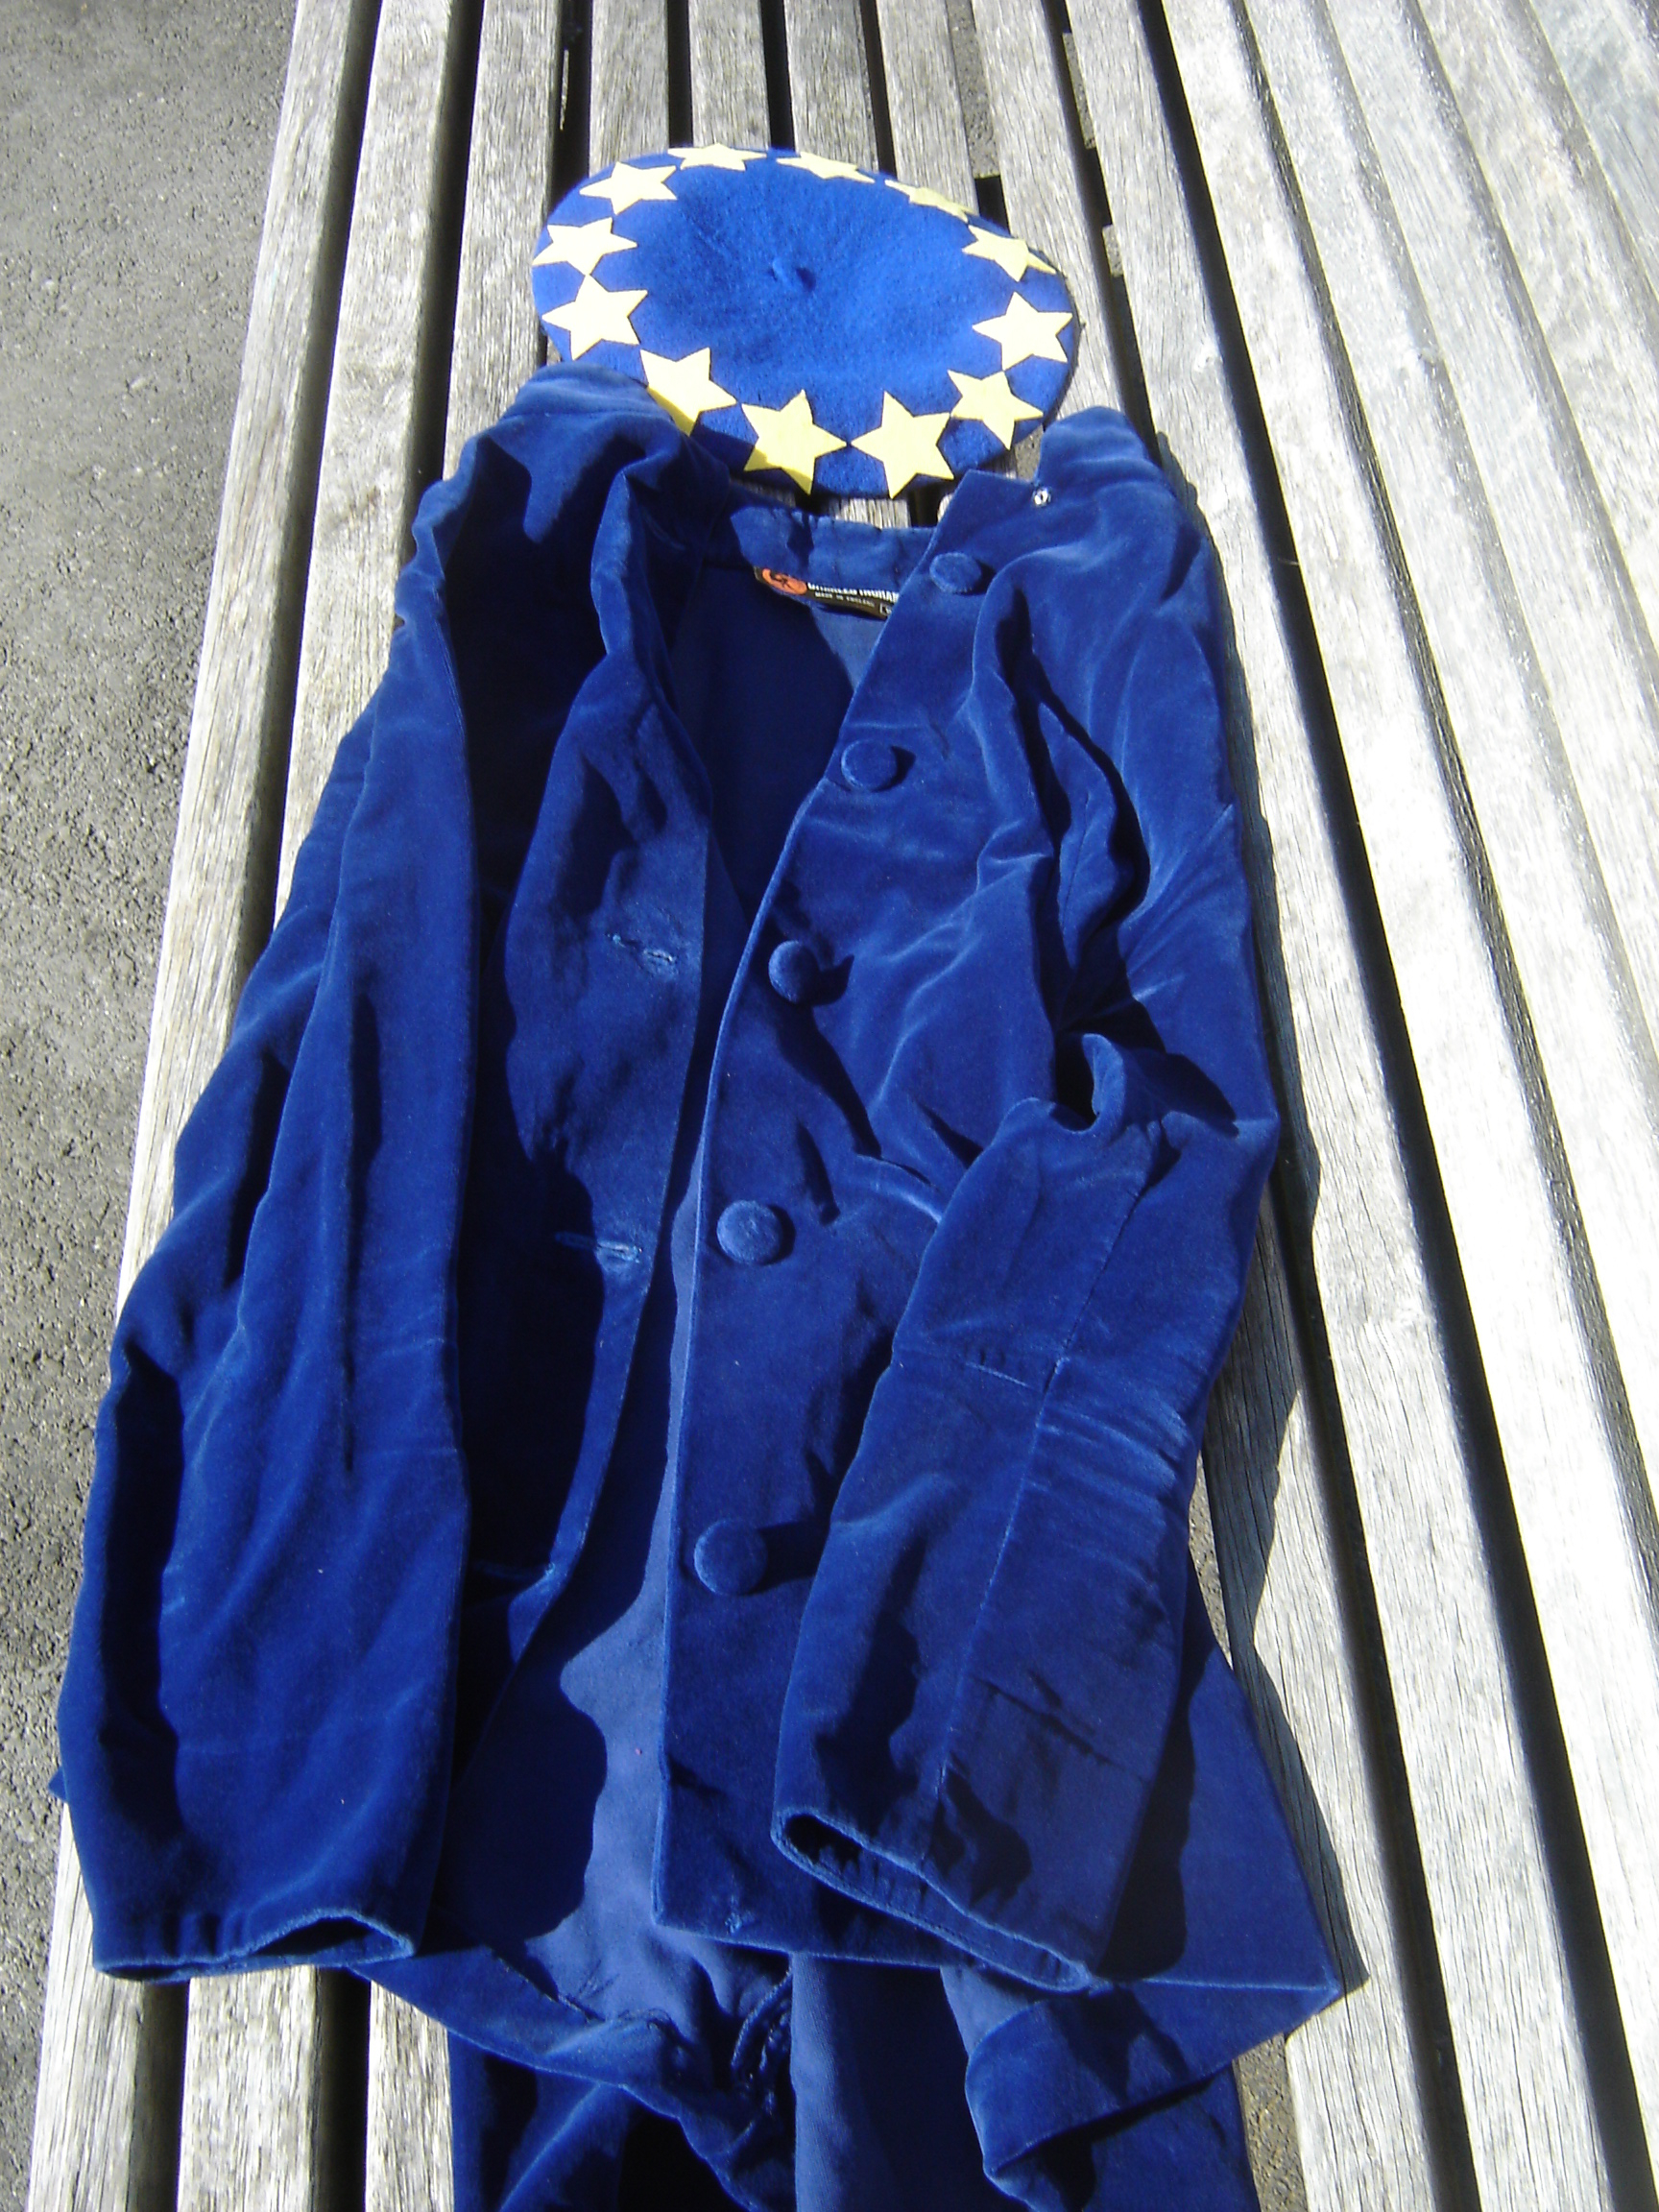 Dark blue EU beret with yellow stars, next to cropped velvet Charles Ingram jacket, almost the same colour